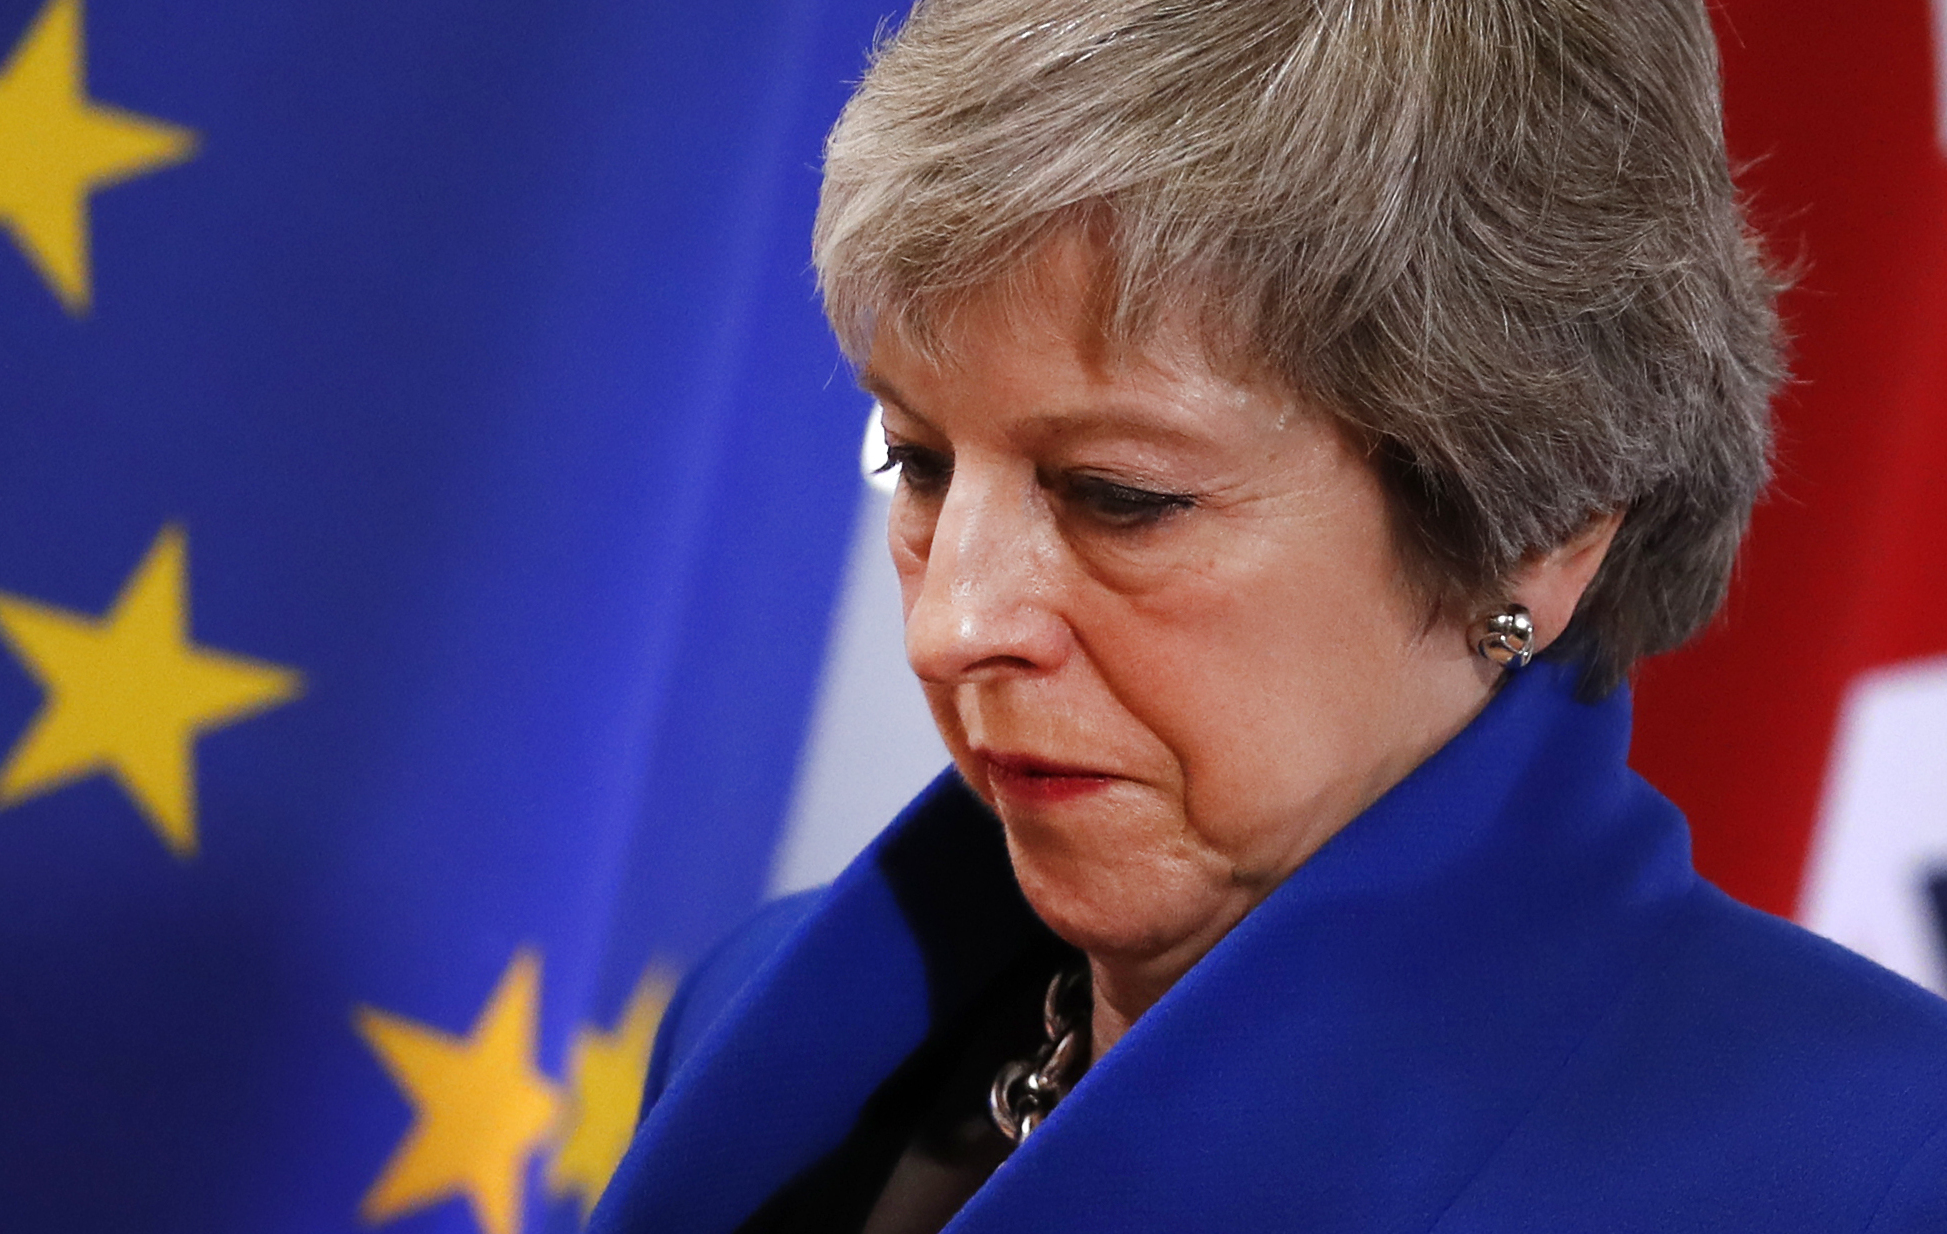 Reports over the weekend suggested Theresa May was going to Brussels to 'handbag' the EU into giving the UK a better deal